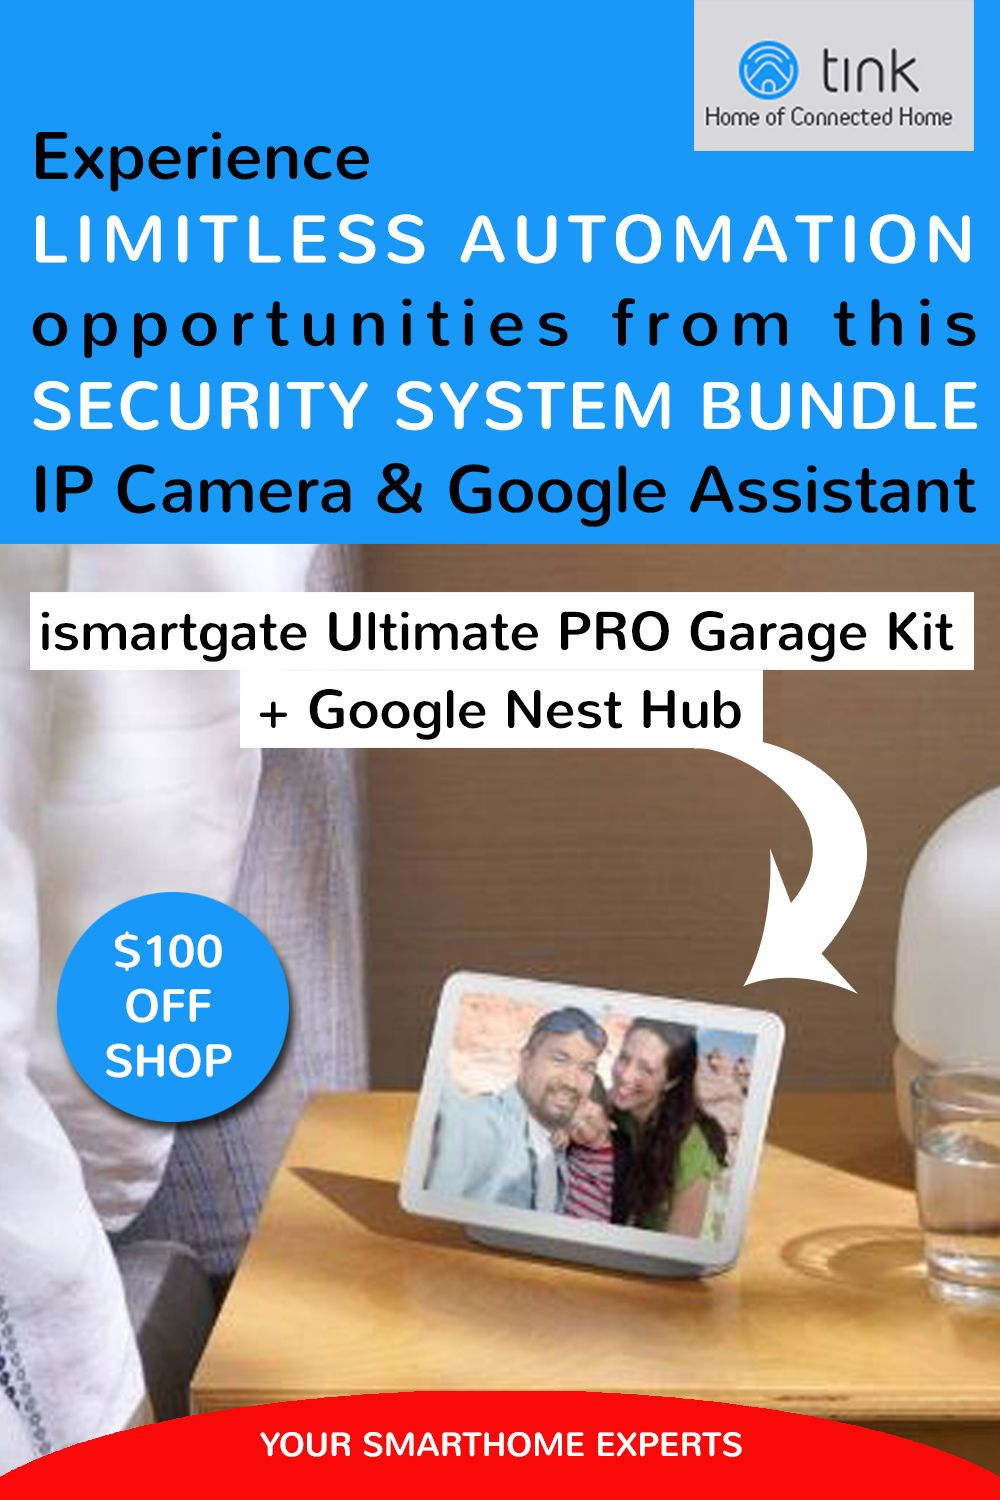 Smart Home Office Security System Ideas in 2020 Security